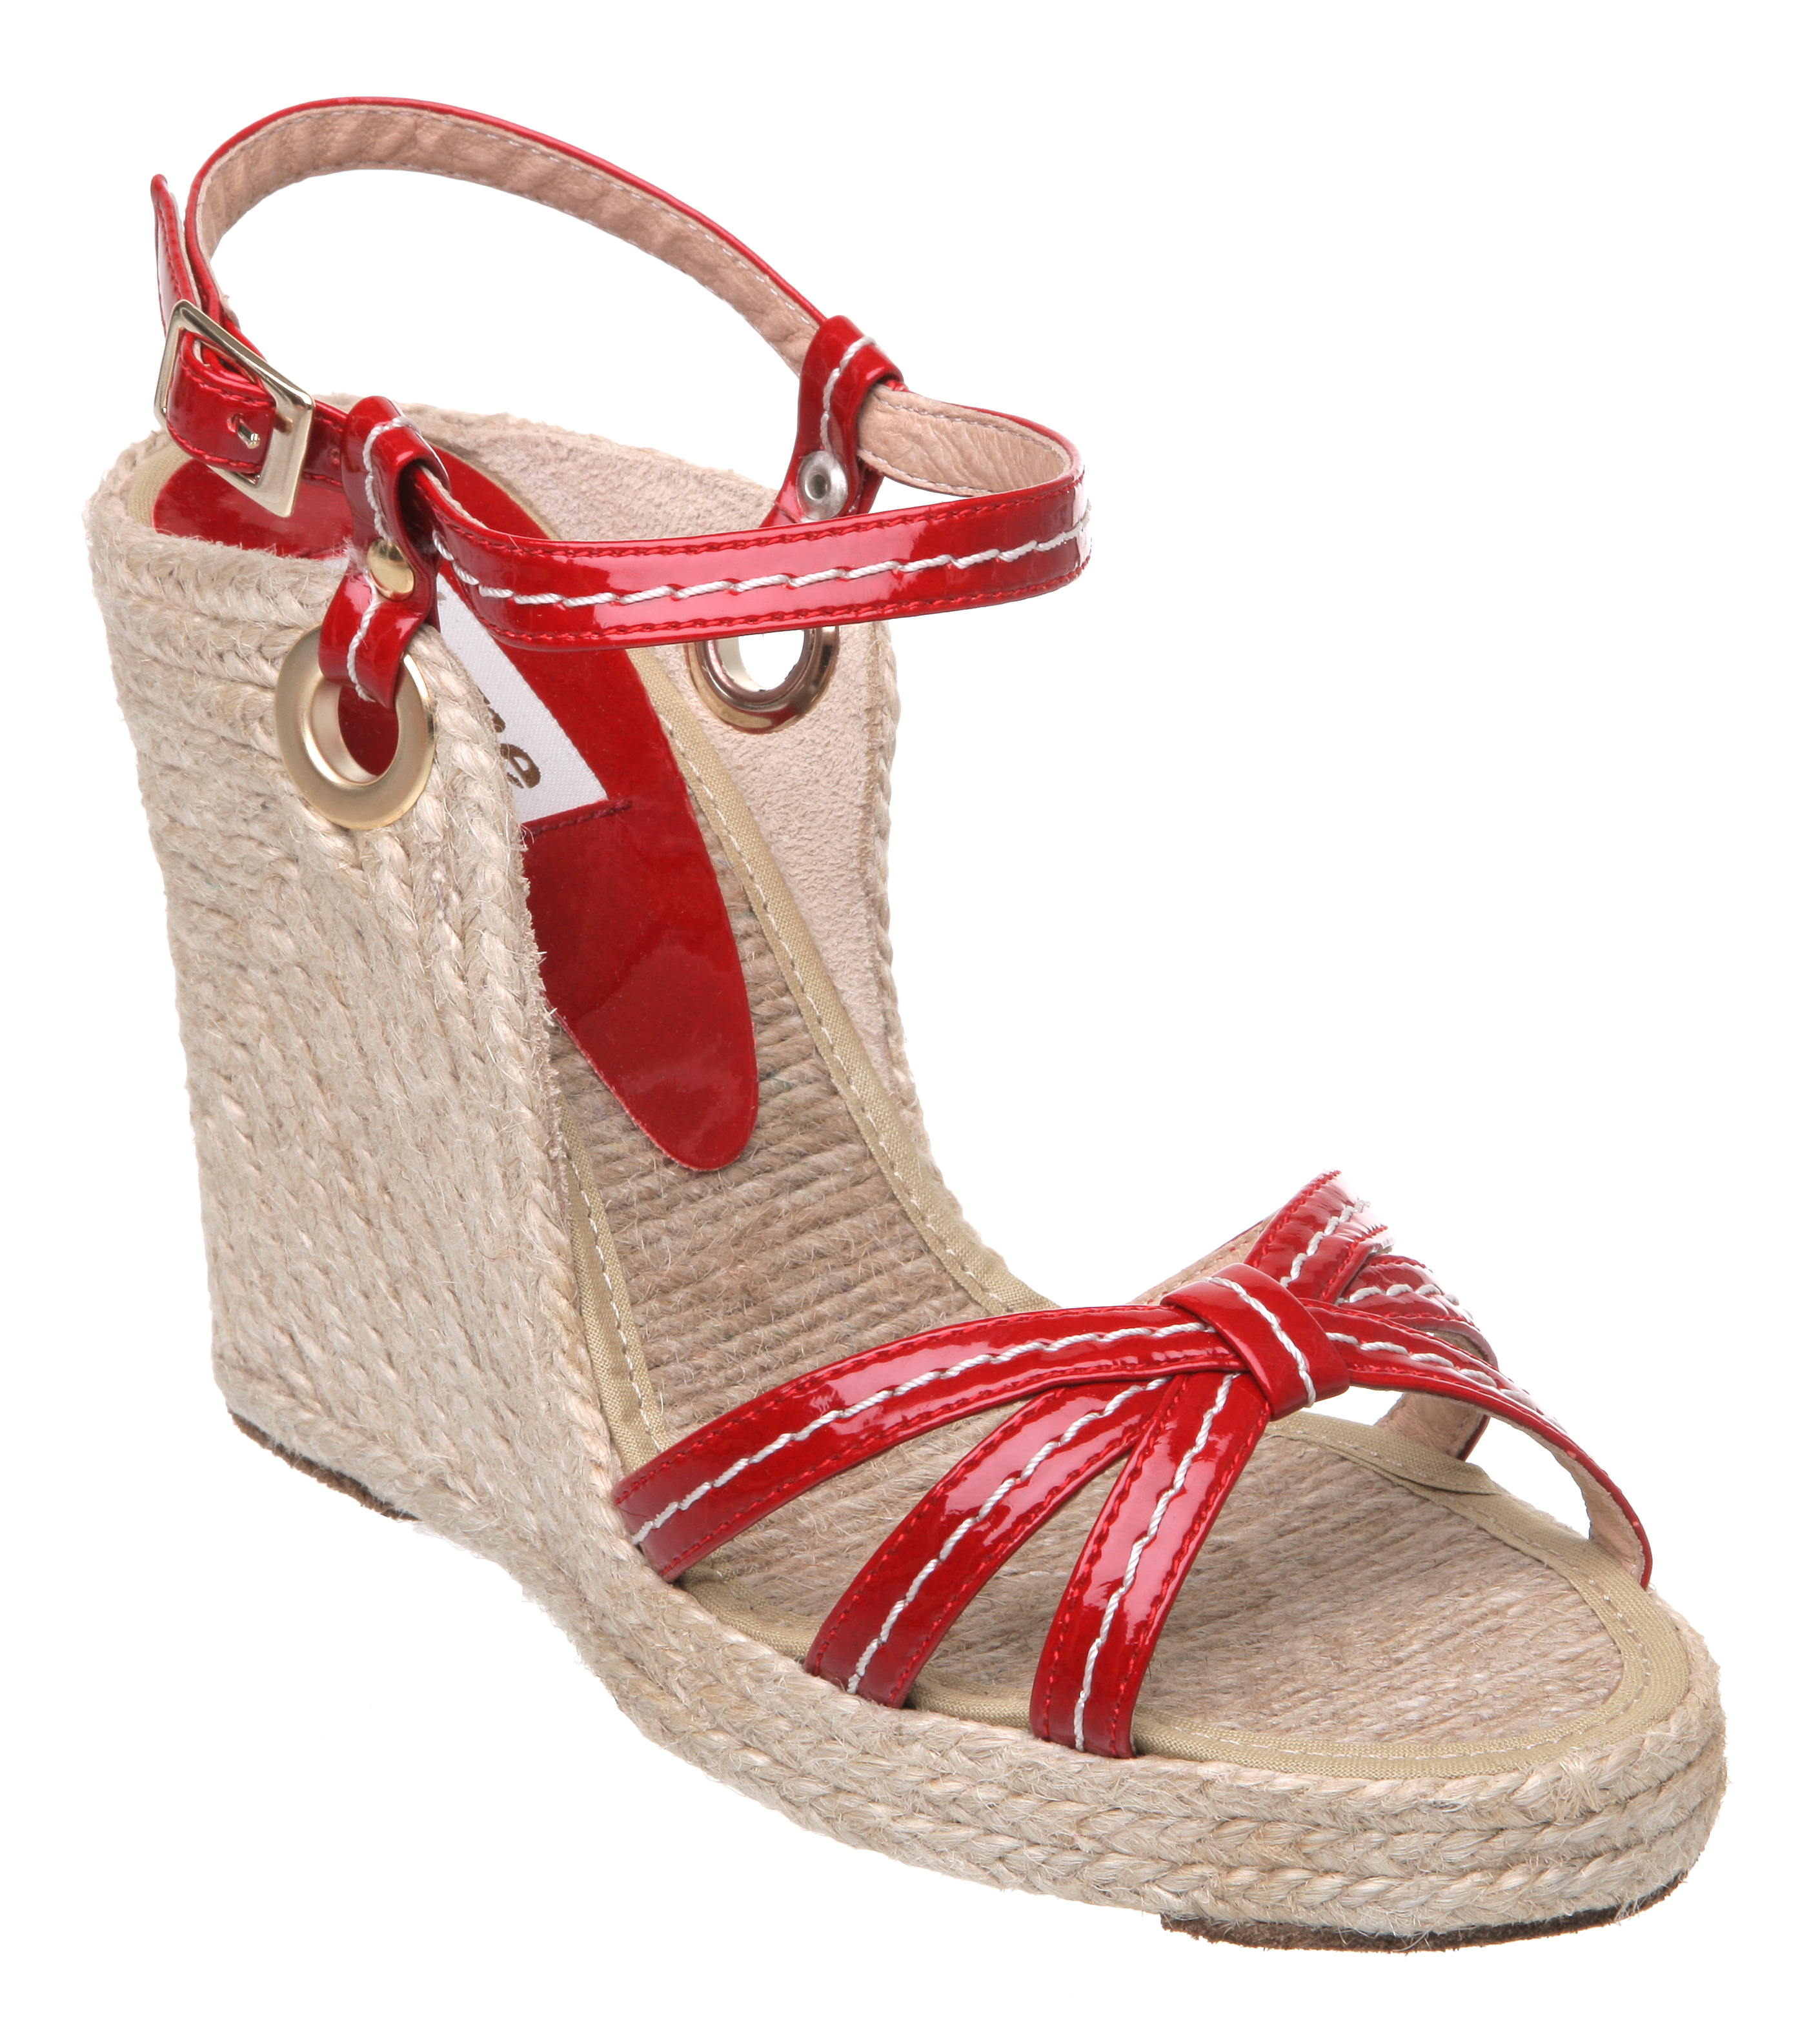 high wedge shoes red - photo #33